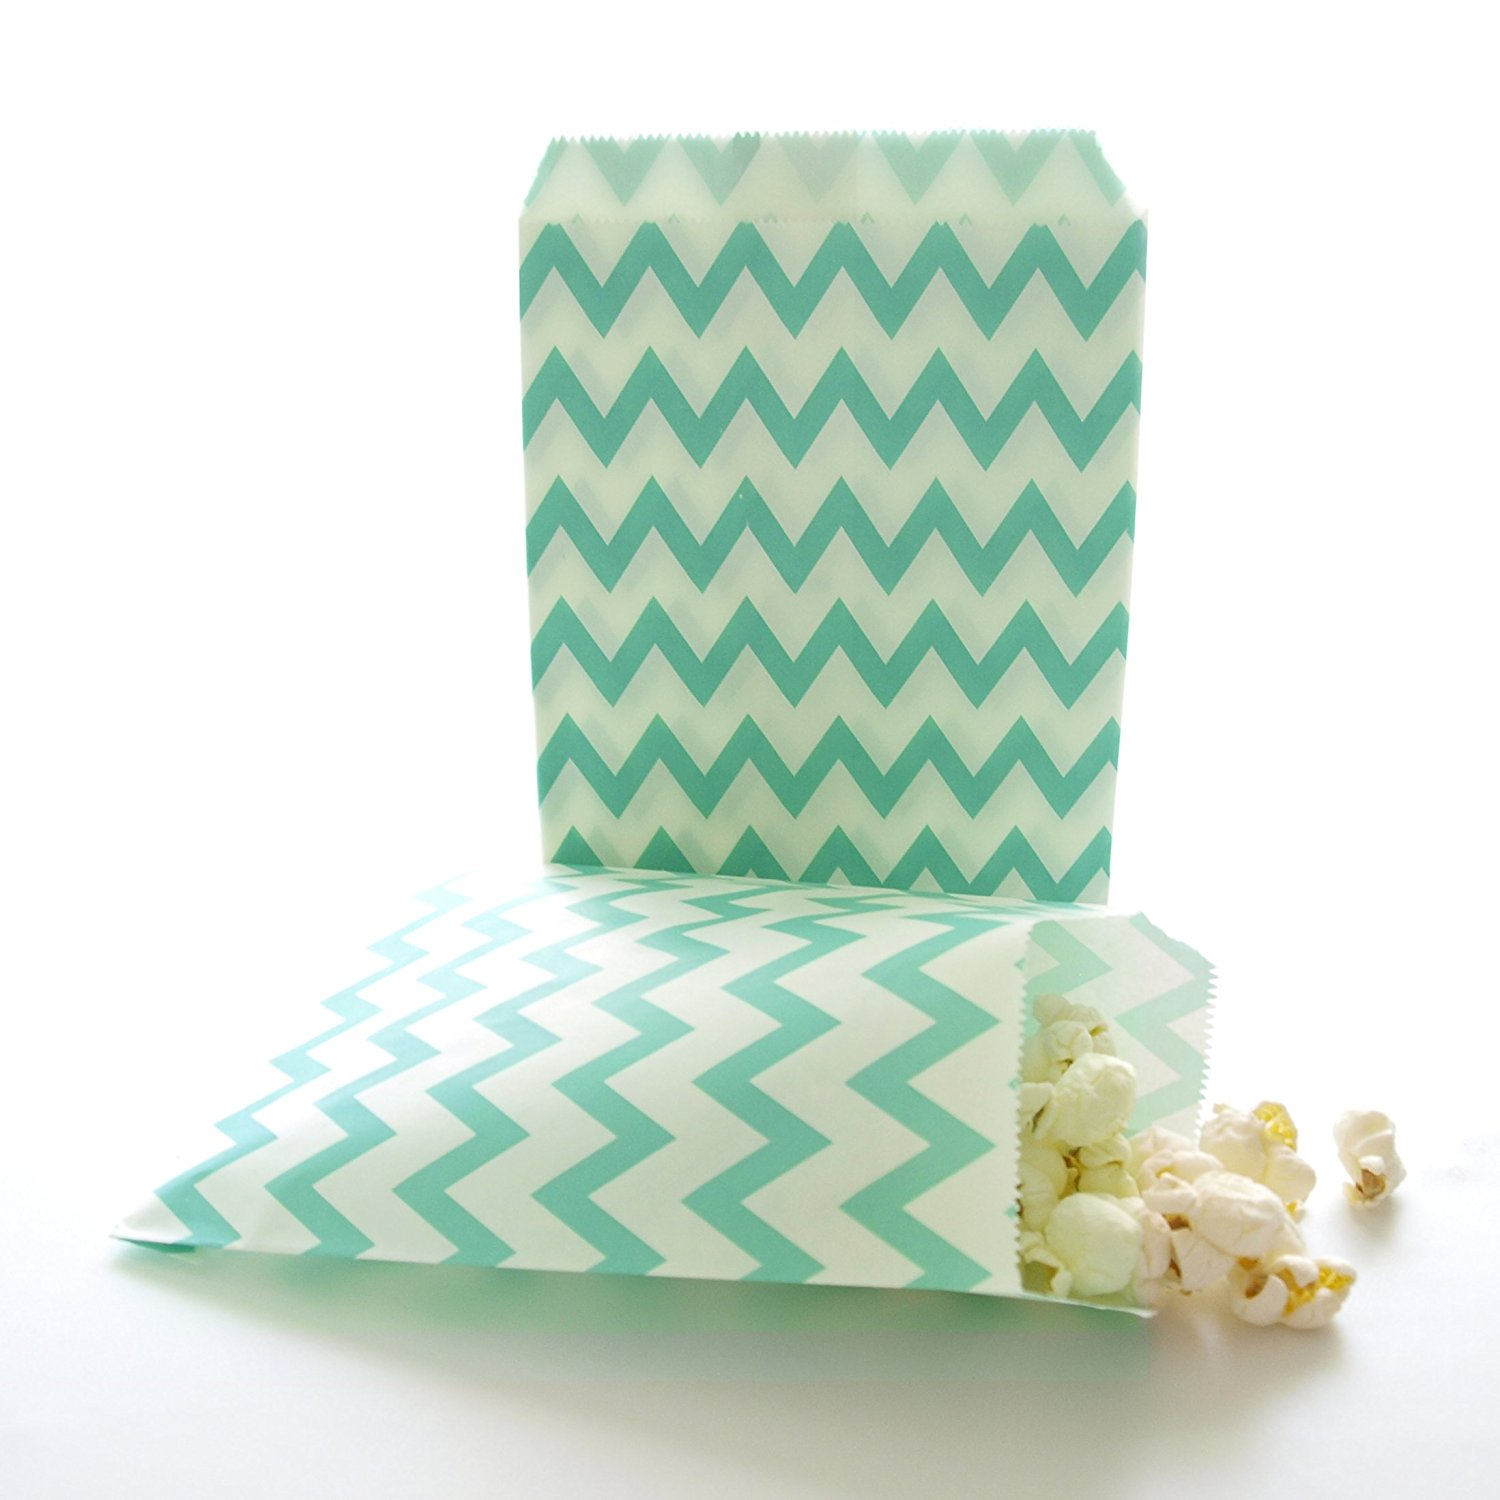 Teal Green Paper Candy Bags Kids Party Favor Small Birthday Goody And Gift Bag 75 Pack Striped Polka Dot Chevron Included In